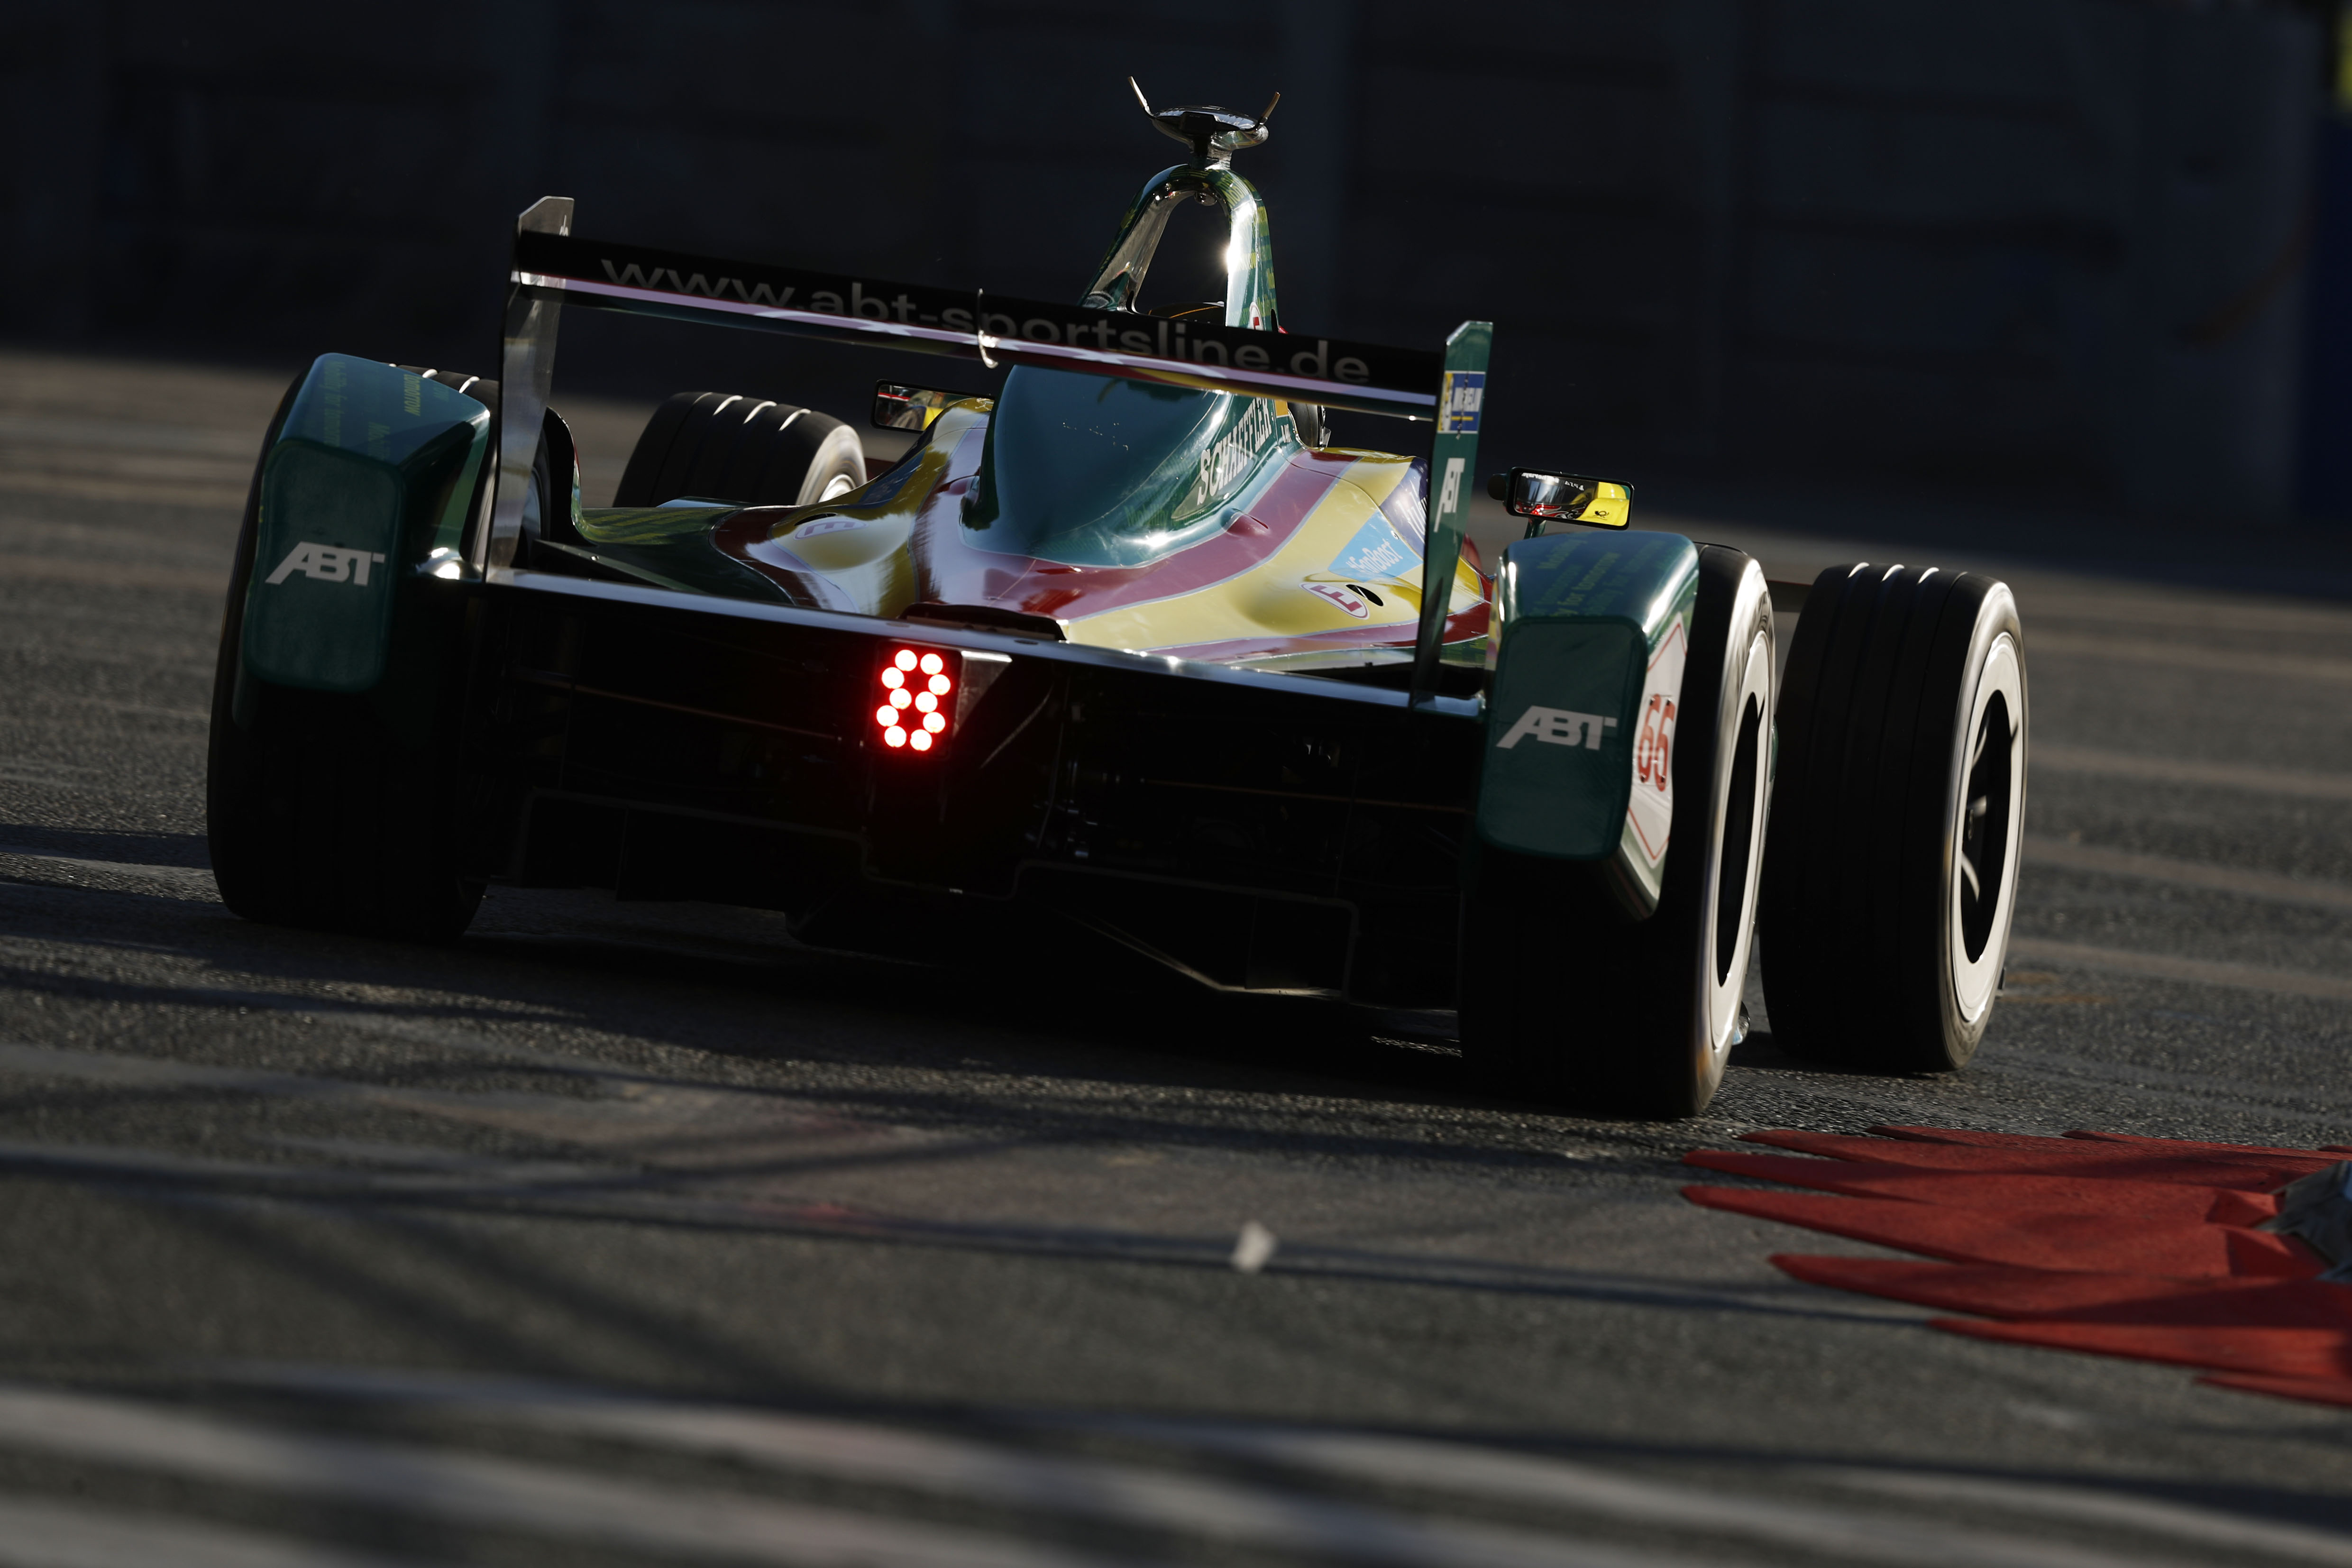 Berlin ePrix: Abt ready for home coming